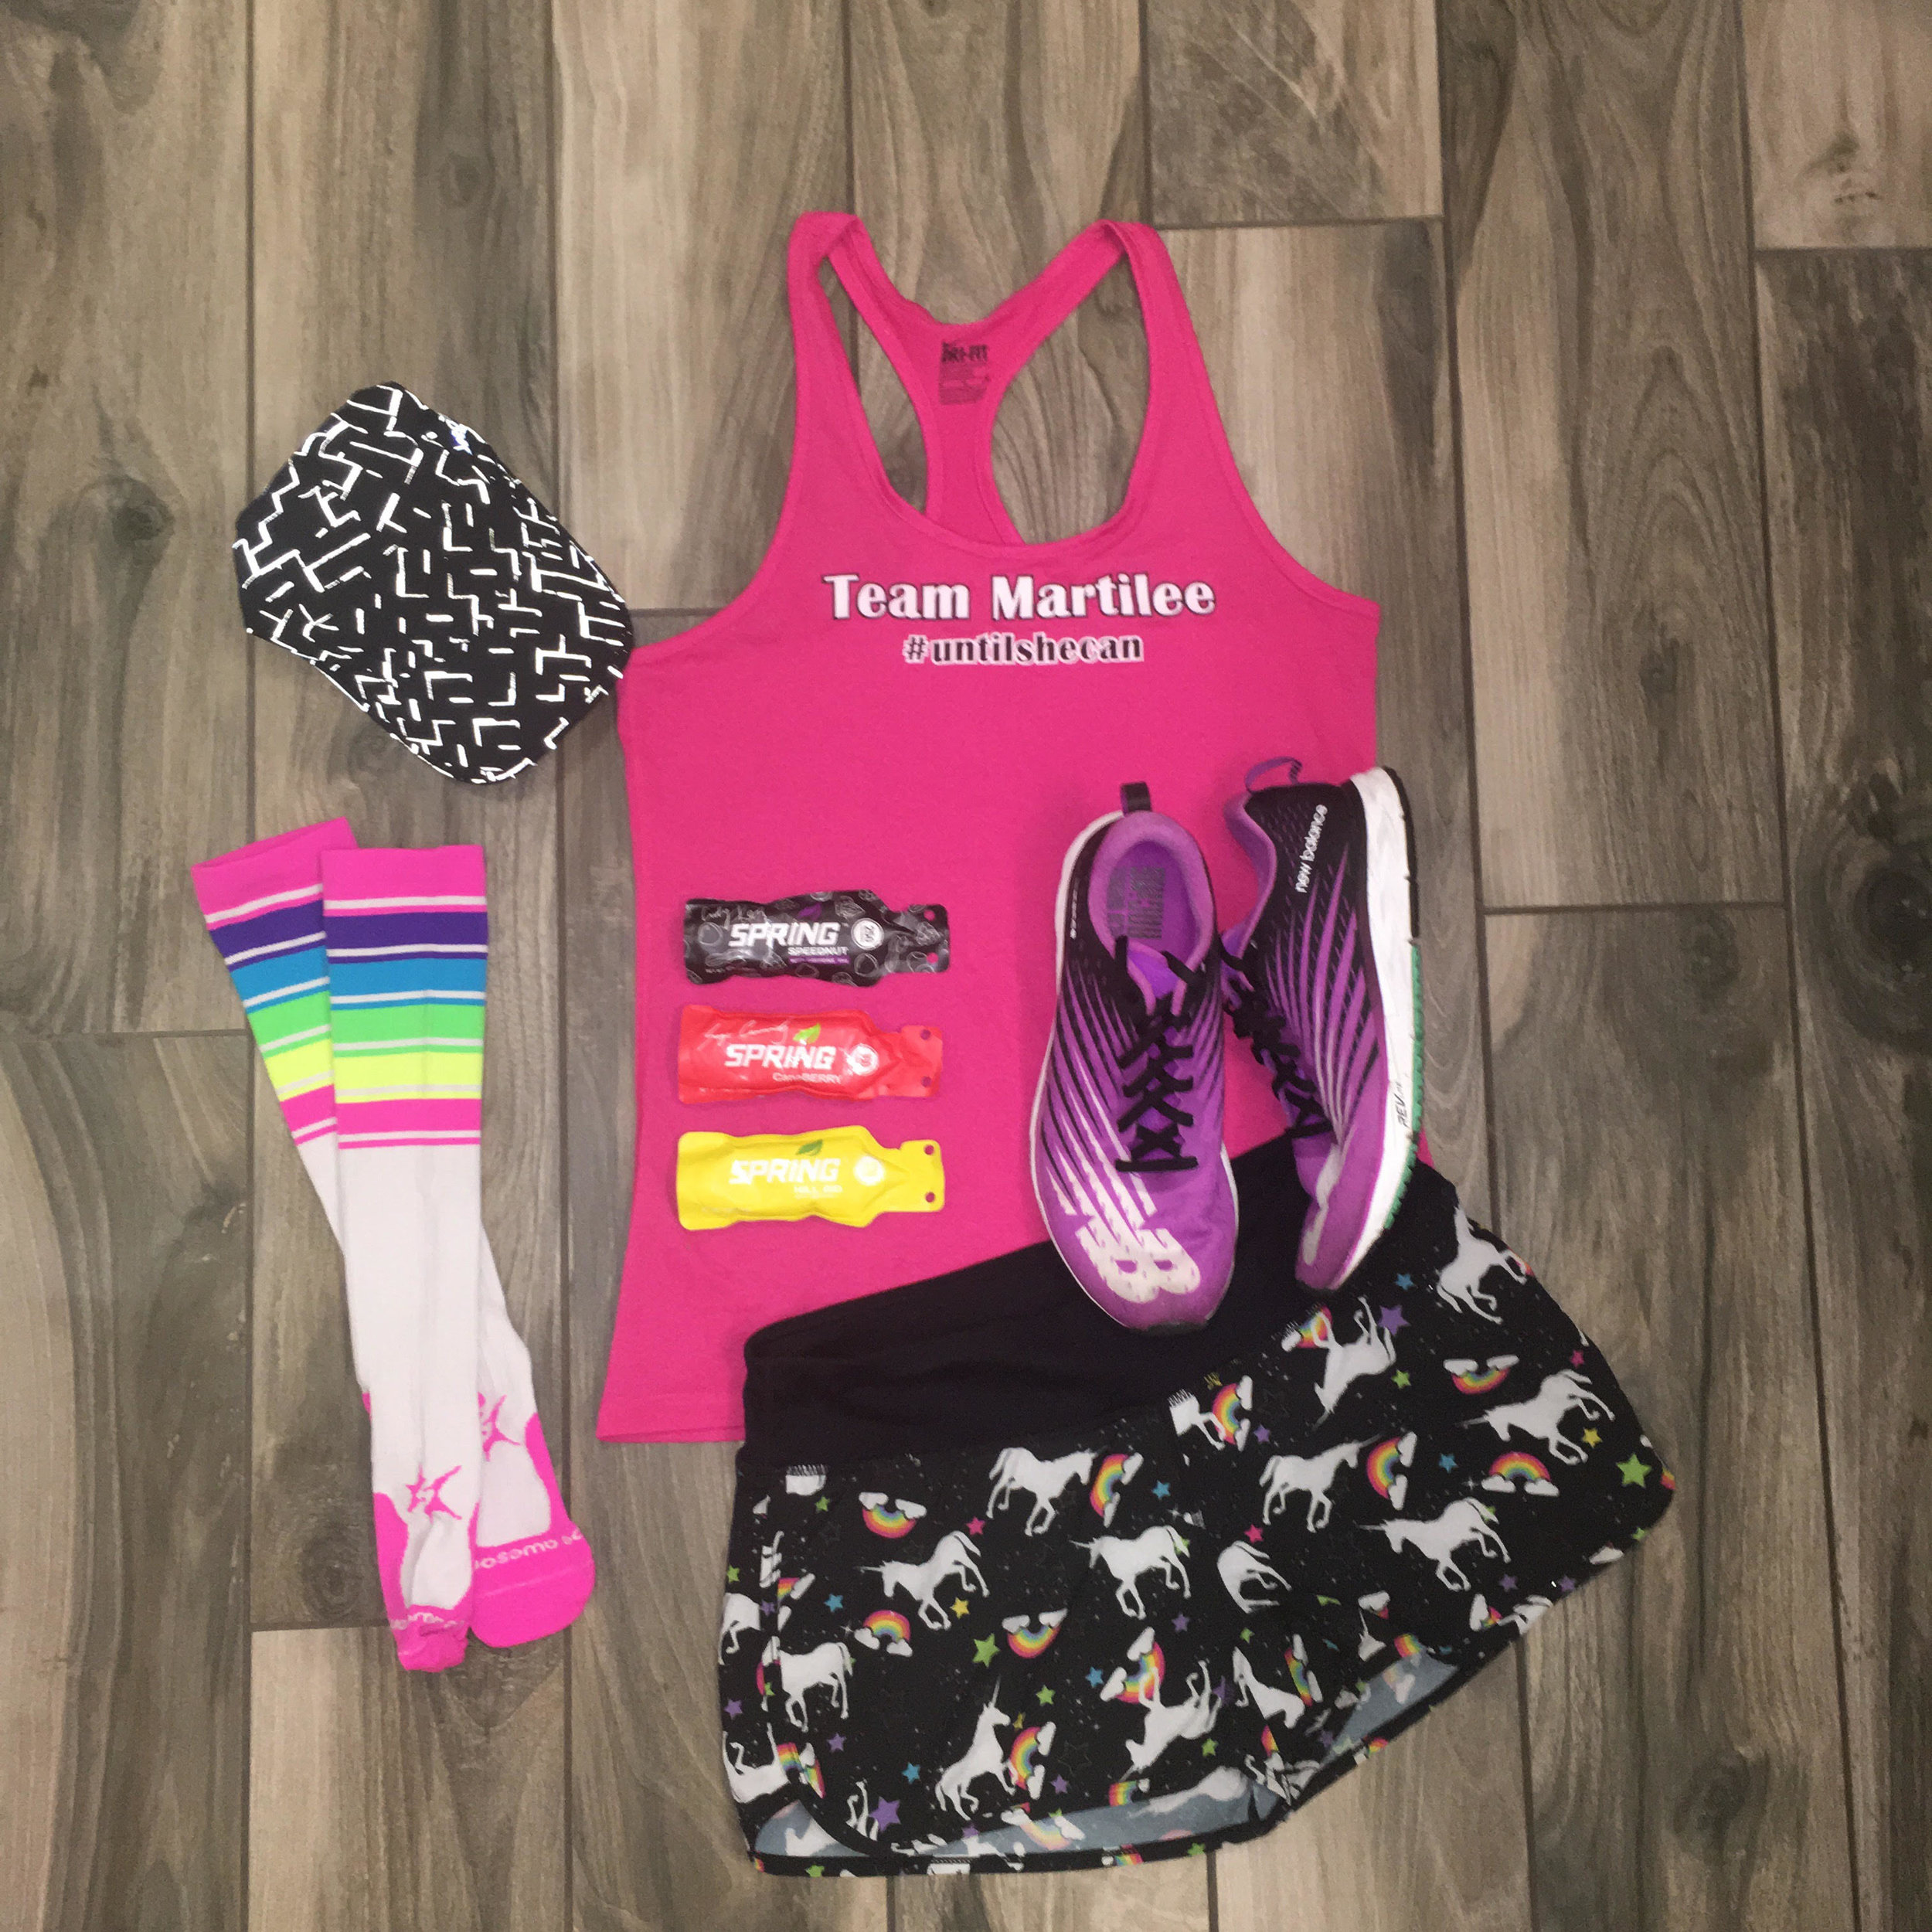 Race ready! I'll be sporting my #TeamMartilee tank, Sparkle Athletic Unicorn Shorts, Procompression socks, Spring Energy Gels, Brooks running hat and New Balance 1500s. Let's go!